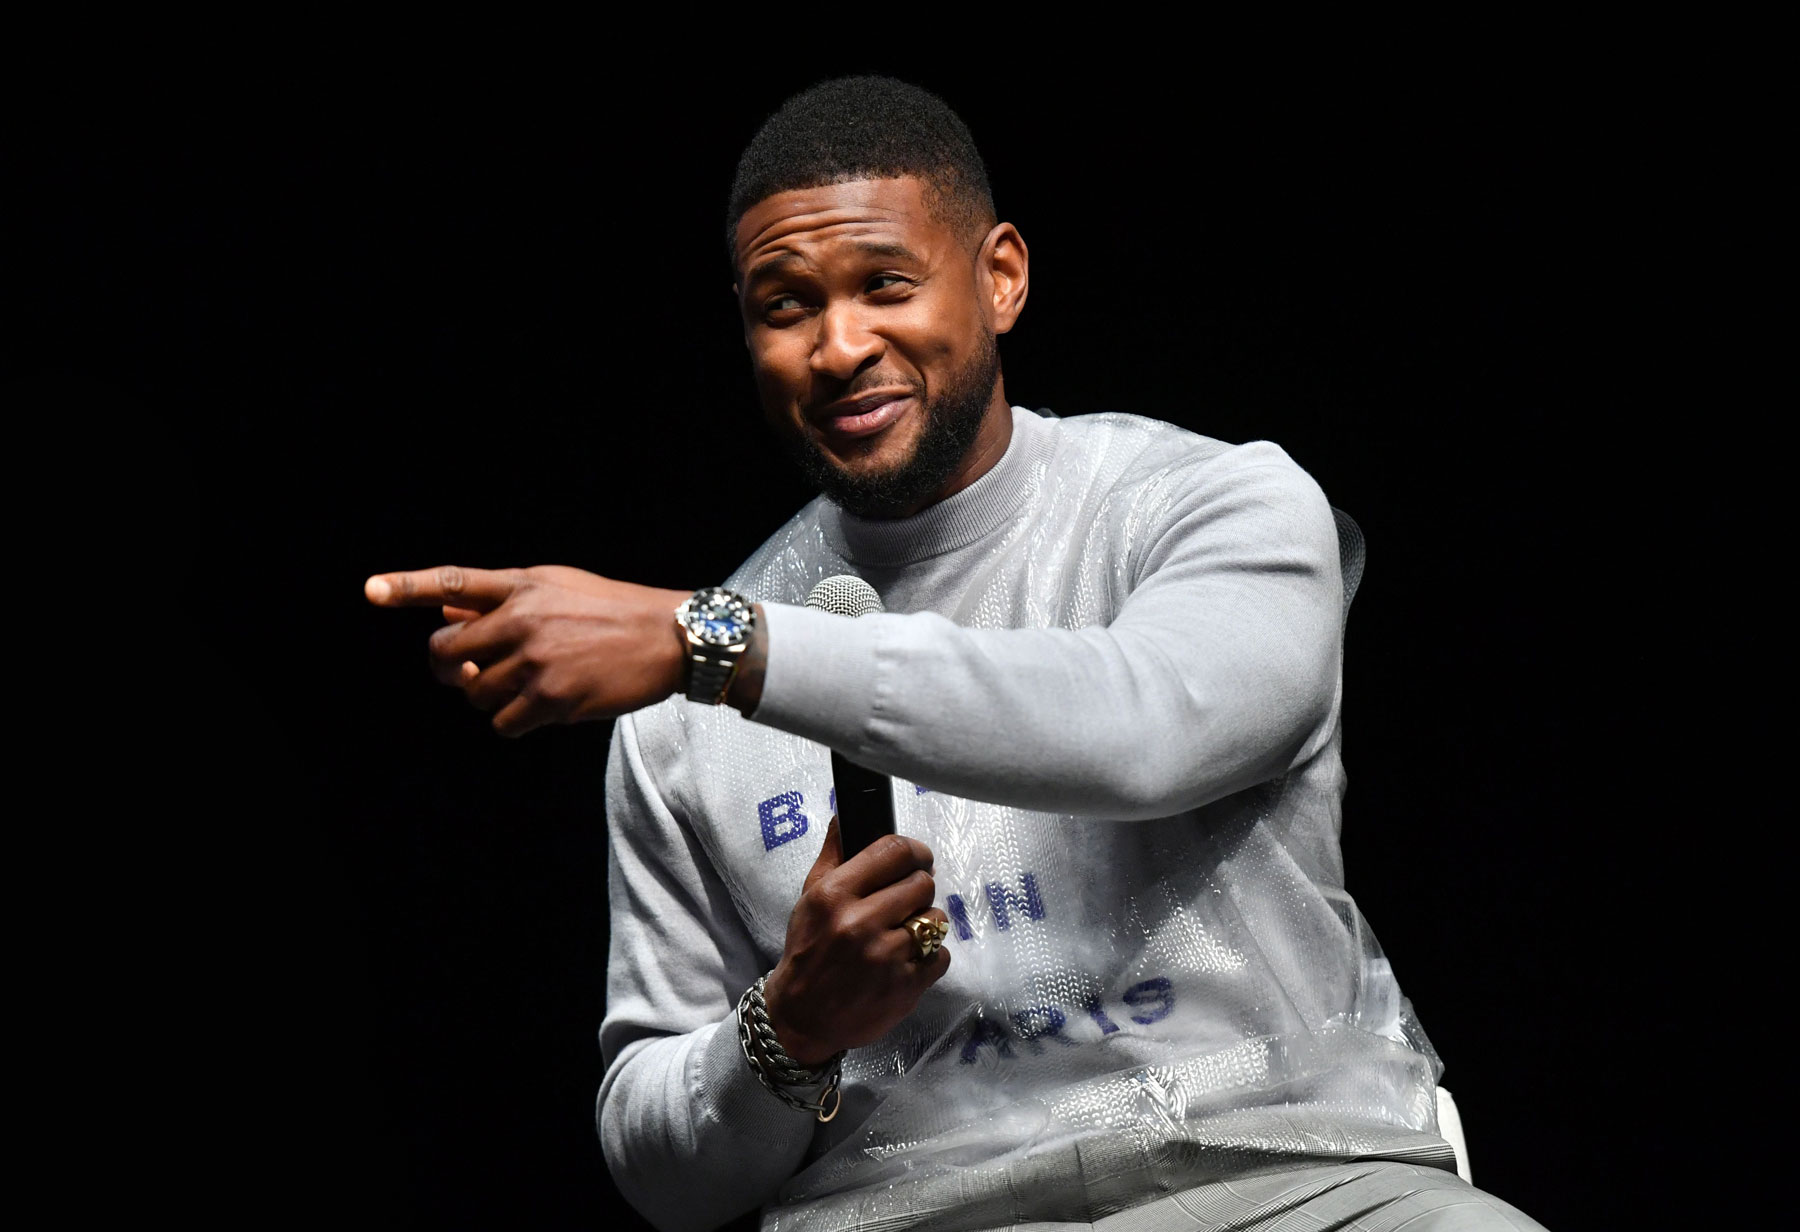 Want to Make an R&B Hit in 2020? Try Sampling Usher - EpicNews